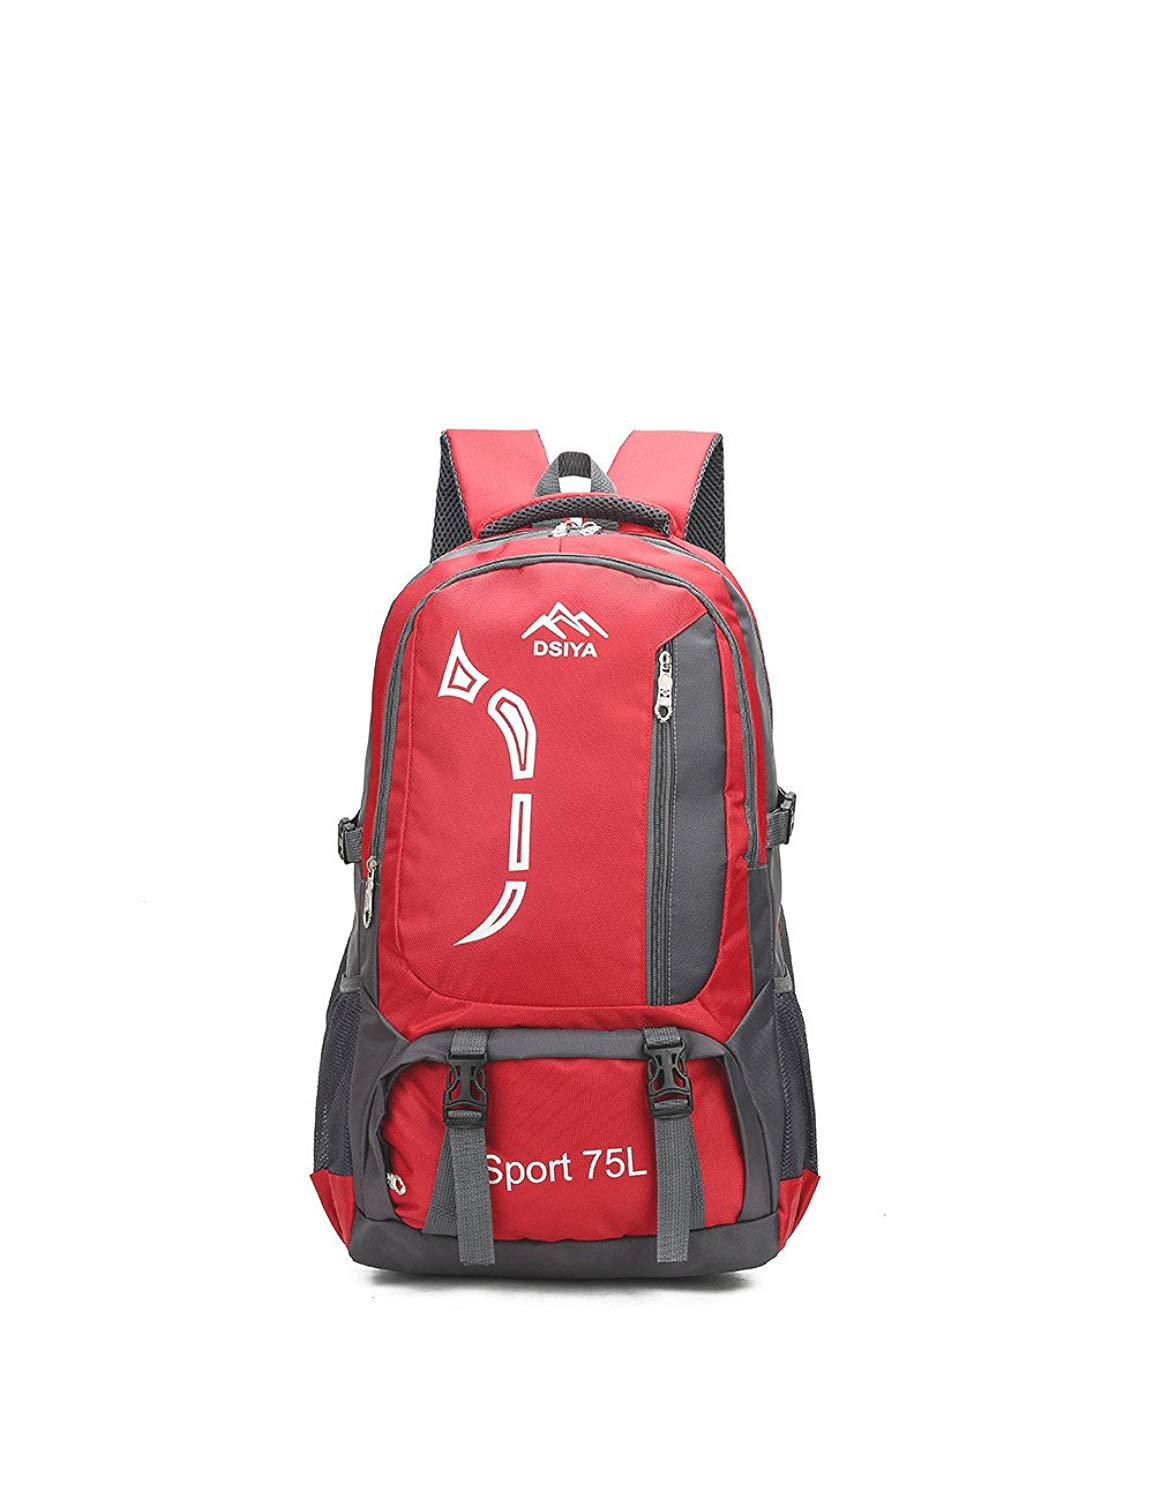 f05374cf3b5b Cheap Simple Backpack Pattern, find Simple Backpack Pattern deals on ...